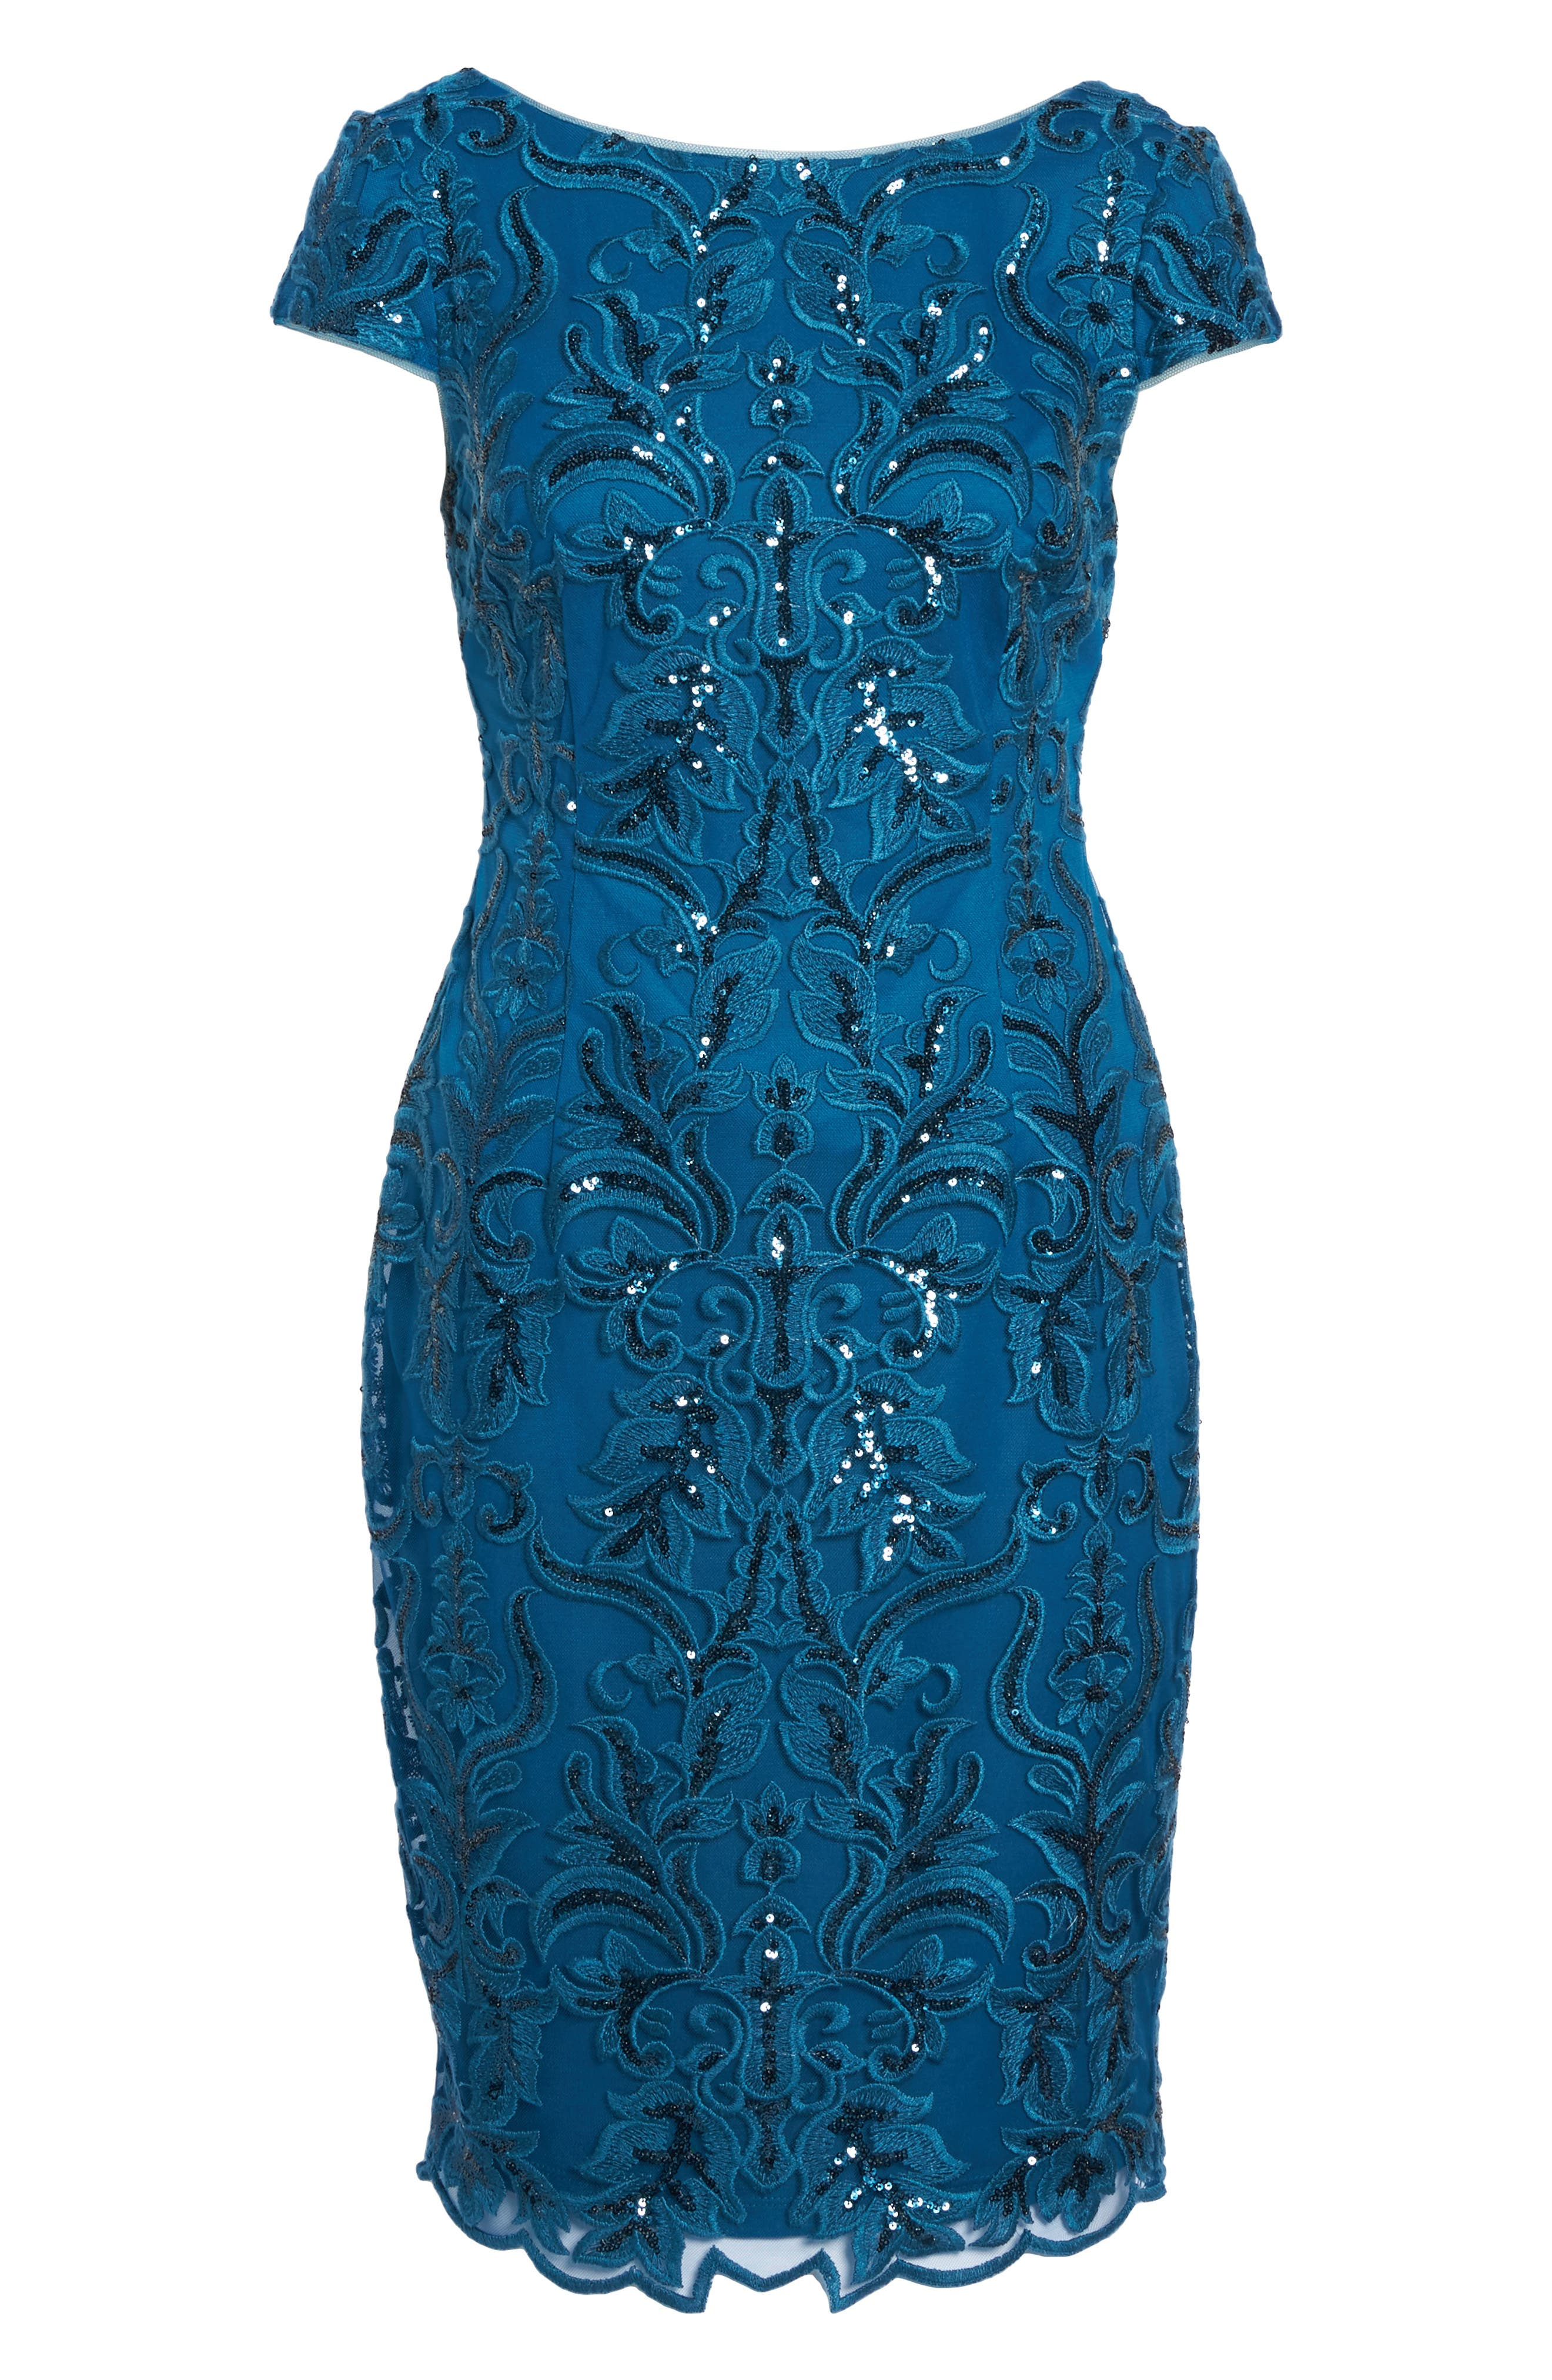 Sequin Embroidered Sheath Dress,                             Alternate thumbnail 6, color,                             471